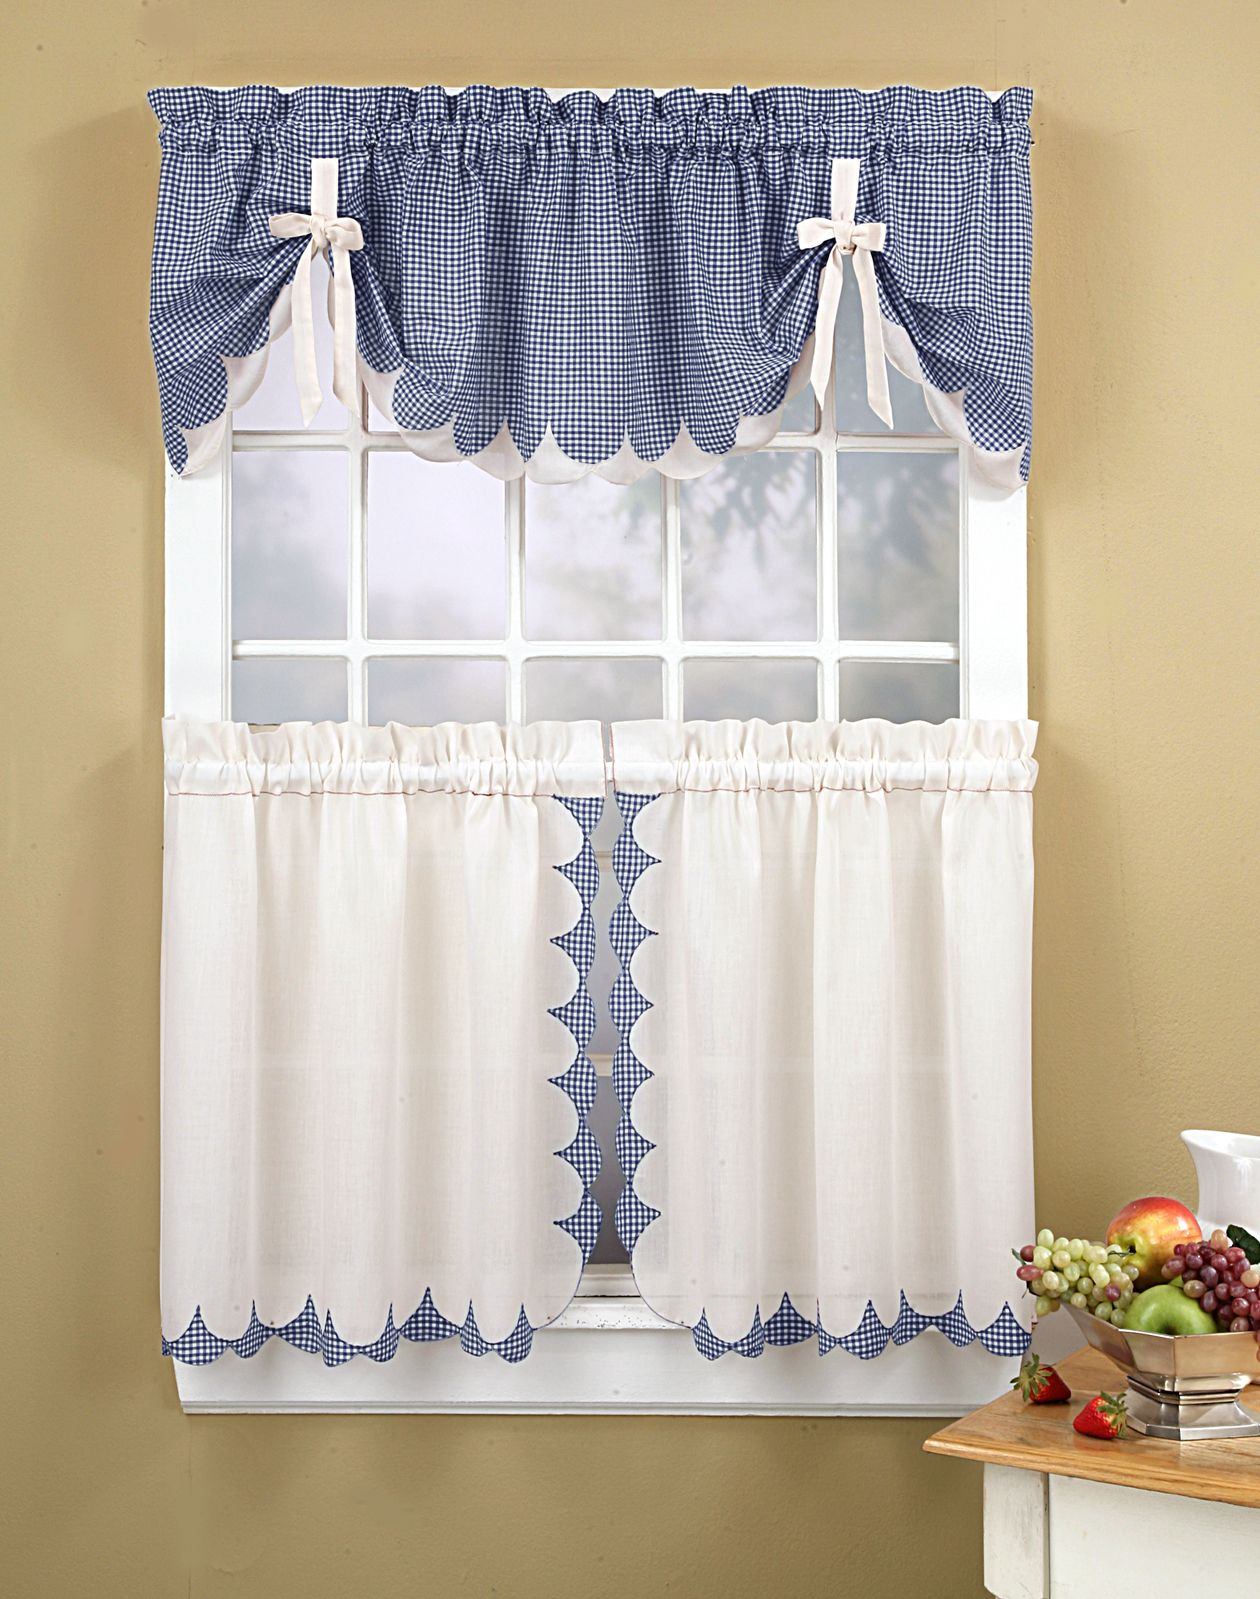 Country Kitchen Curtains Ideas For The Home Inspiring Best About Cafe Pinterest Best Free